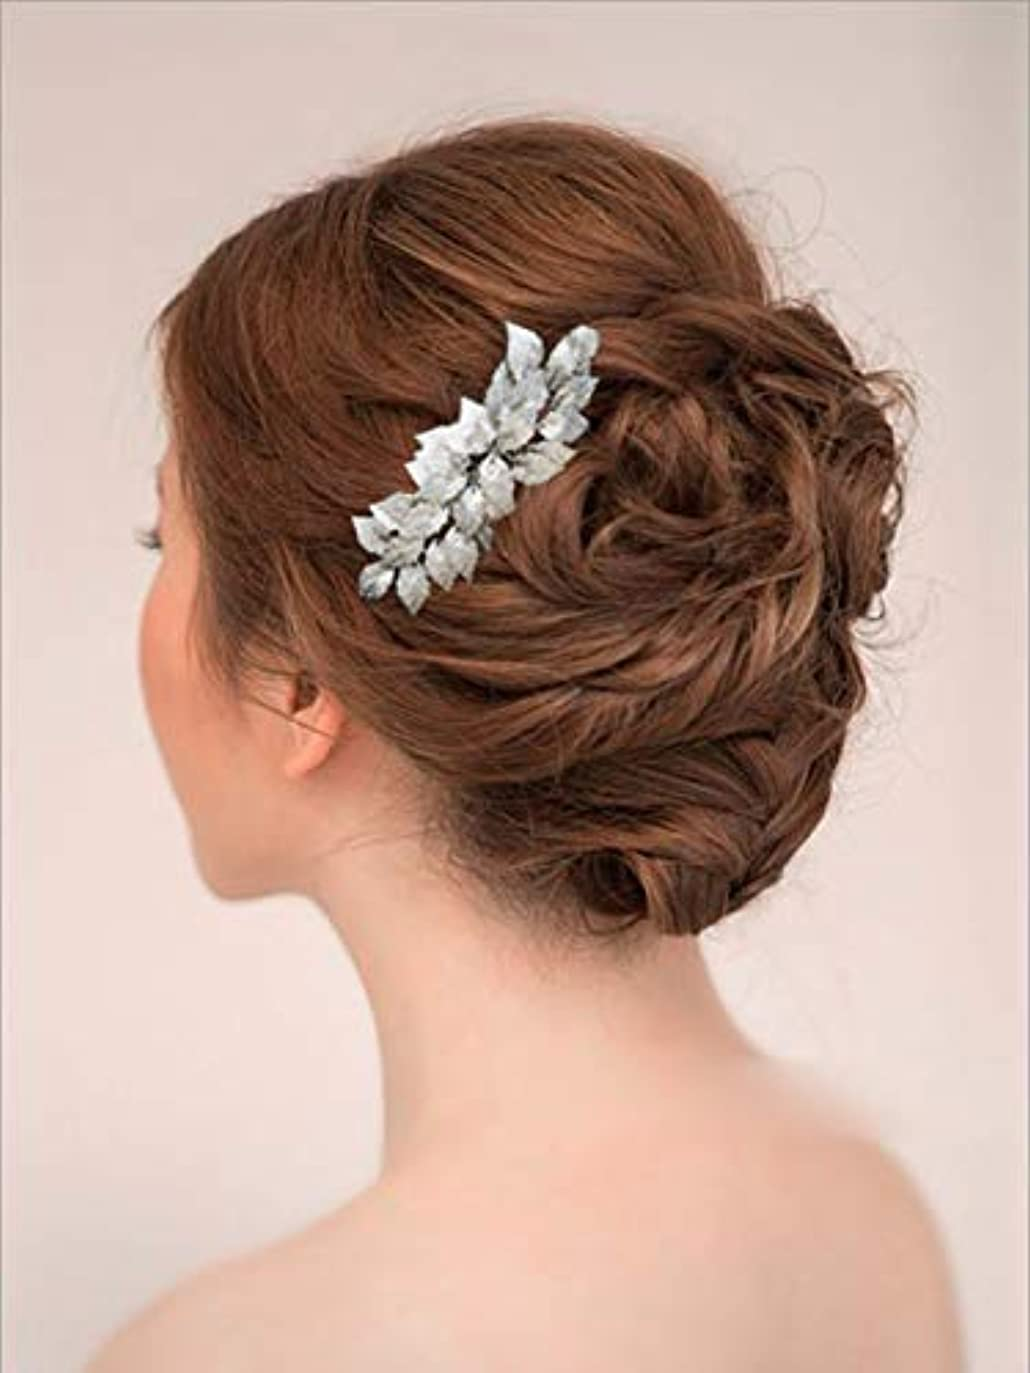 安定しました超高層ビル情緒的Yean Bride Wedding Hair Comb Leaves Bridal Hair Comb Accessories for Bride and Bridesmaid (Silver) [並行輸入品]